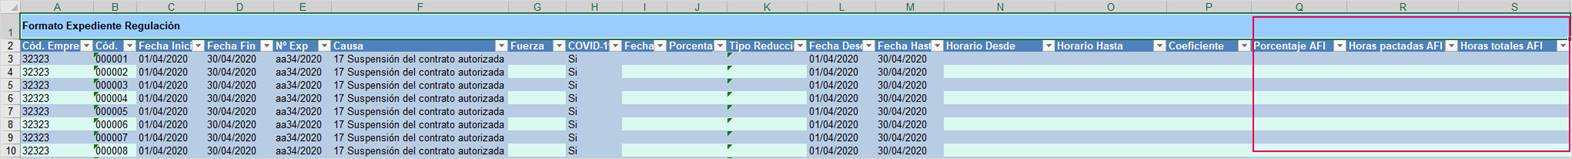 formato 5 expediente regulacion tiempo parcial